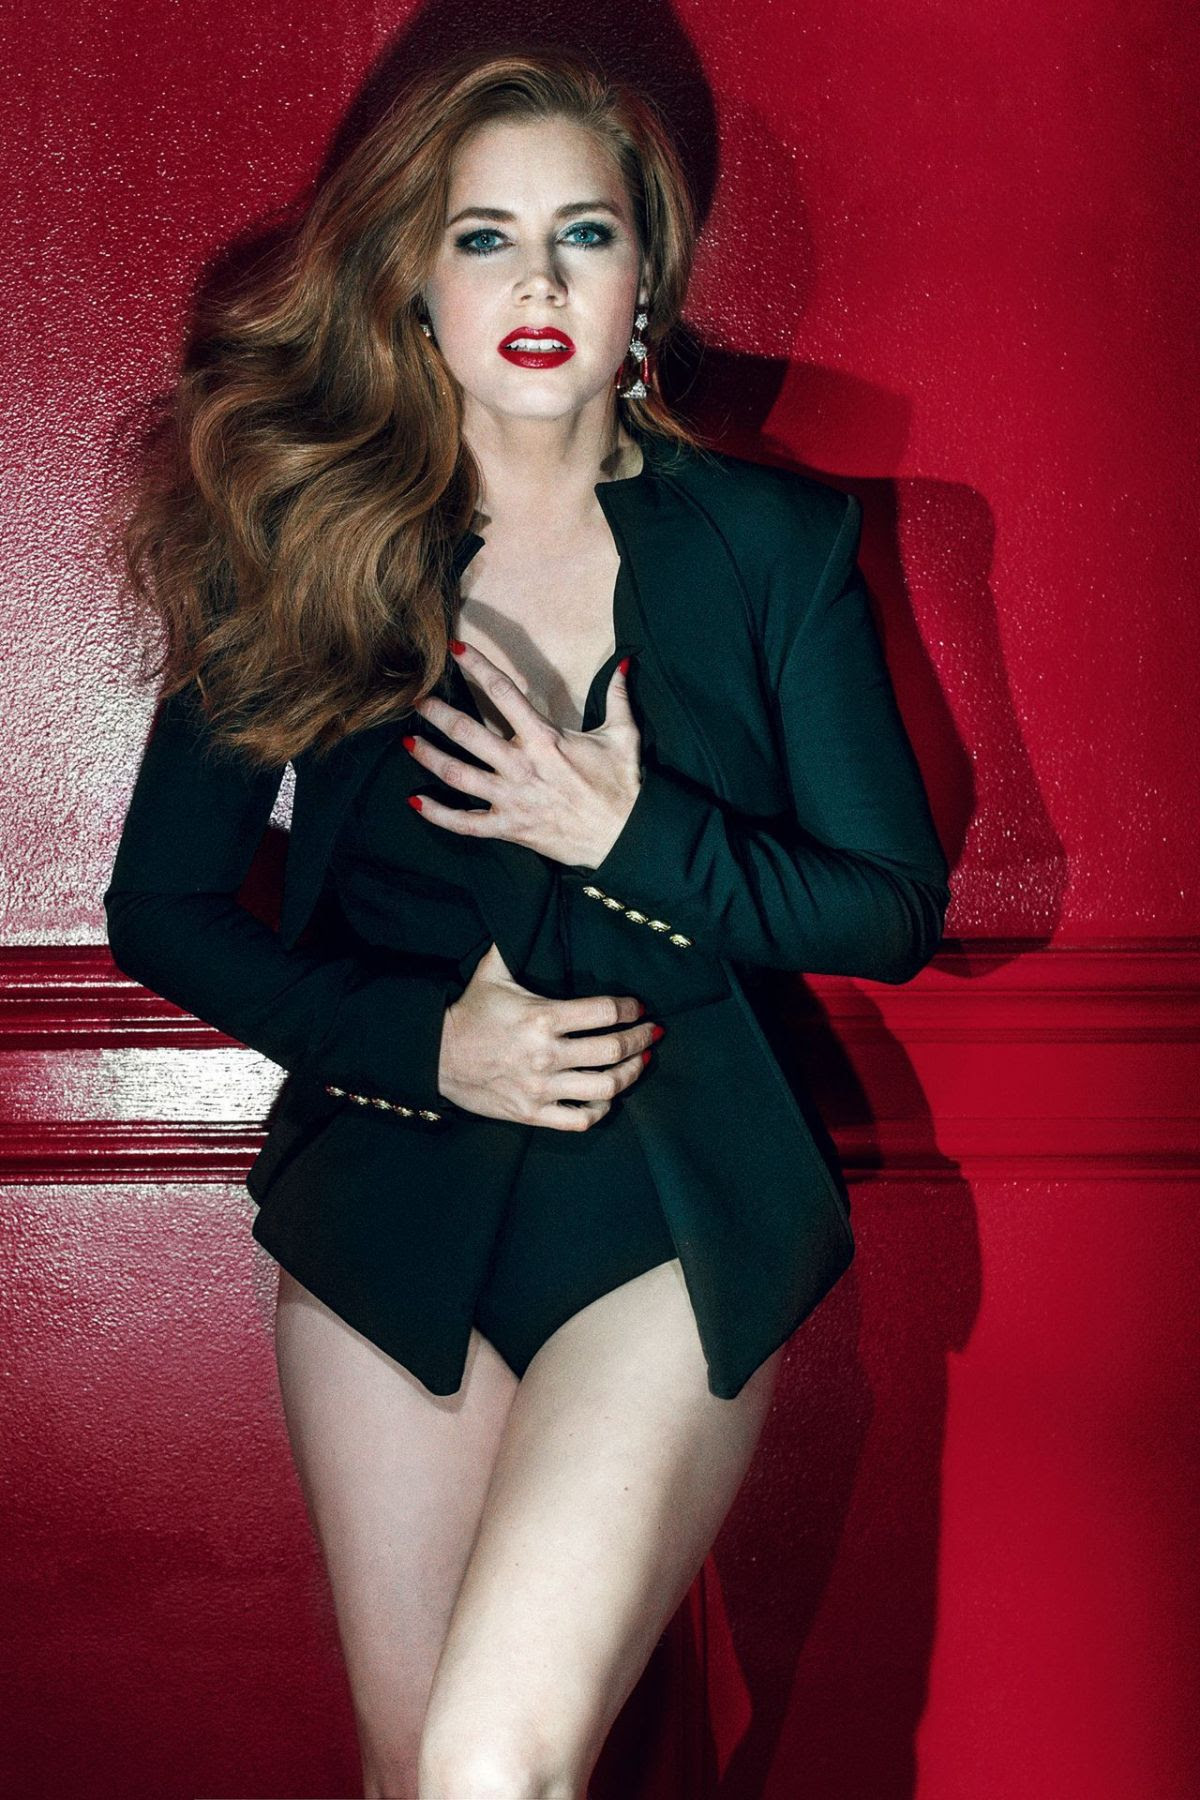 AMY ADAMS in GQ Magazine, UK April 2016 Issue